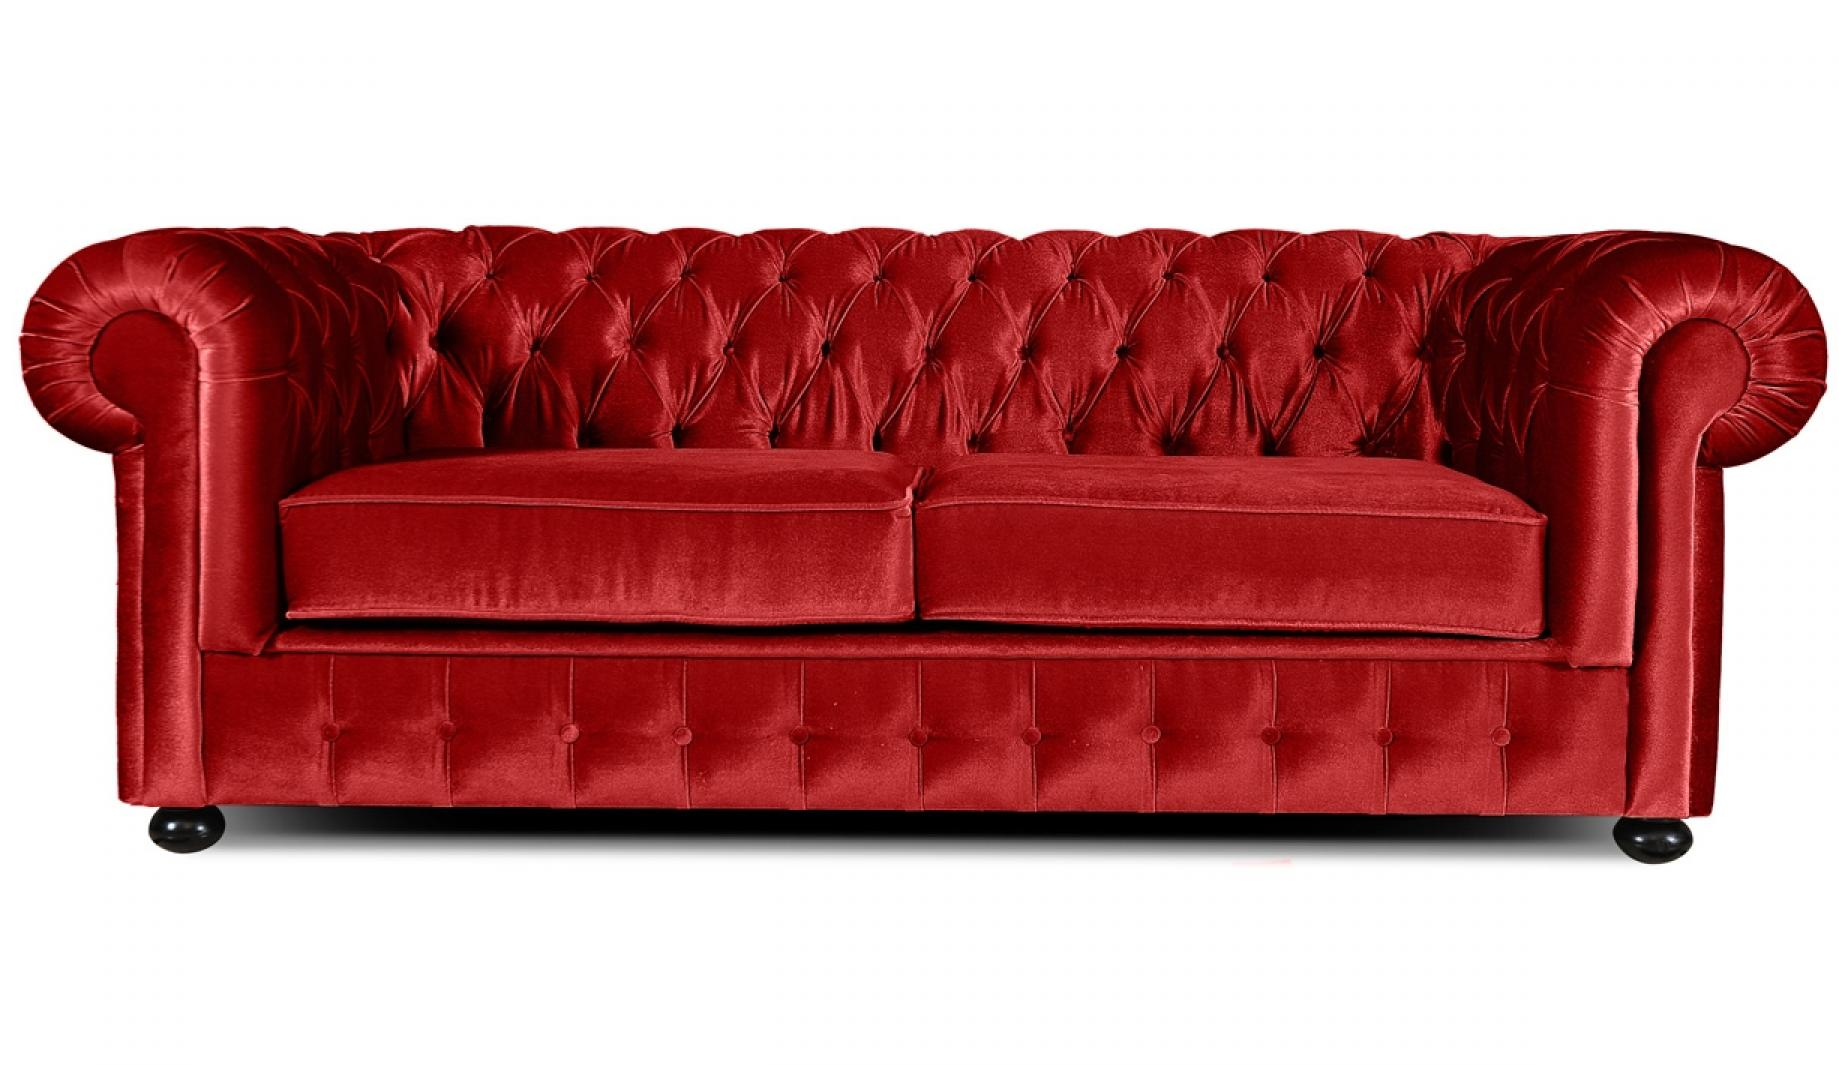 Canape chesterfield velours for Canape chesterfield en velours